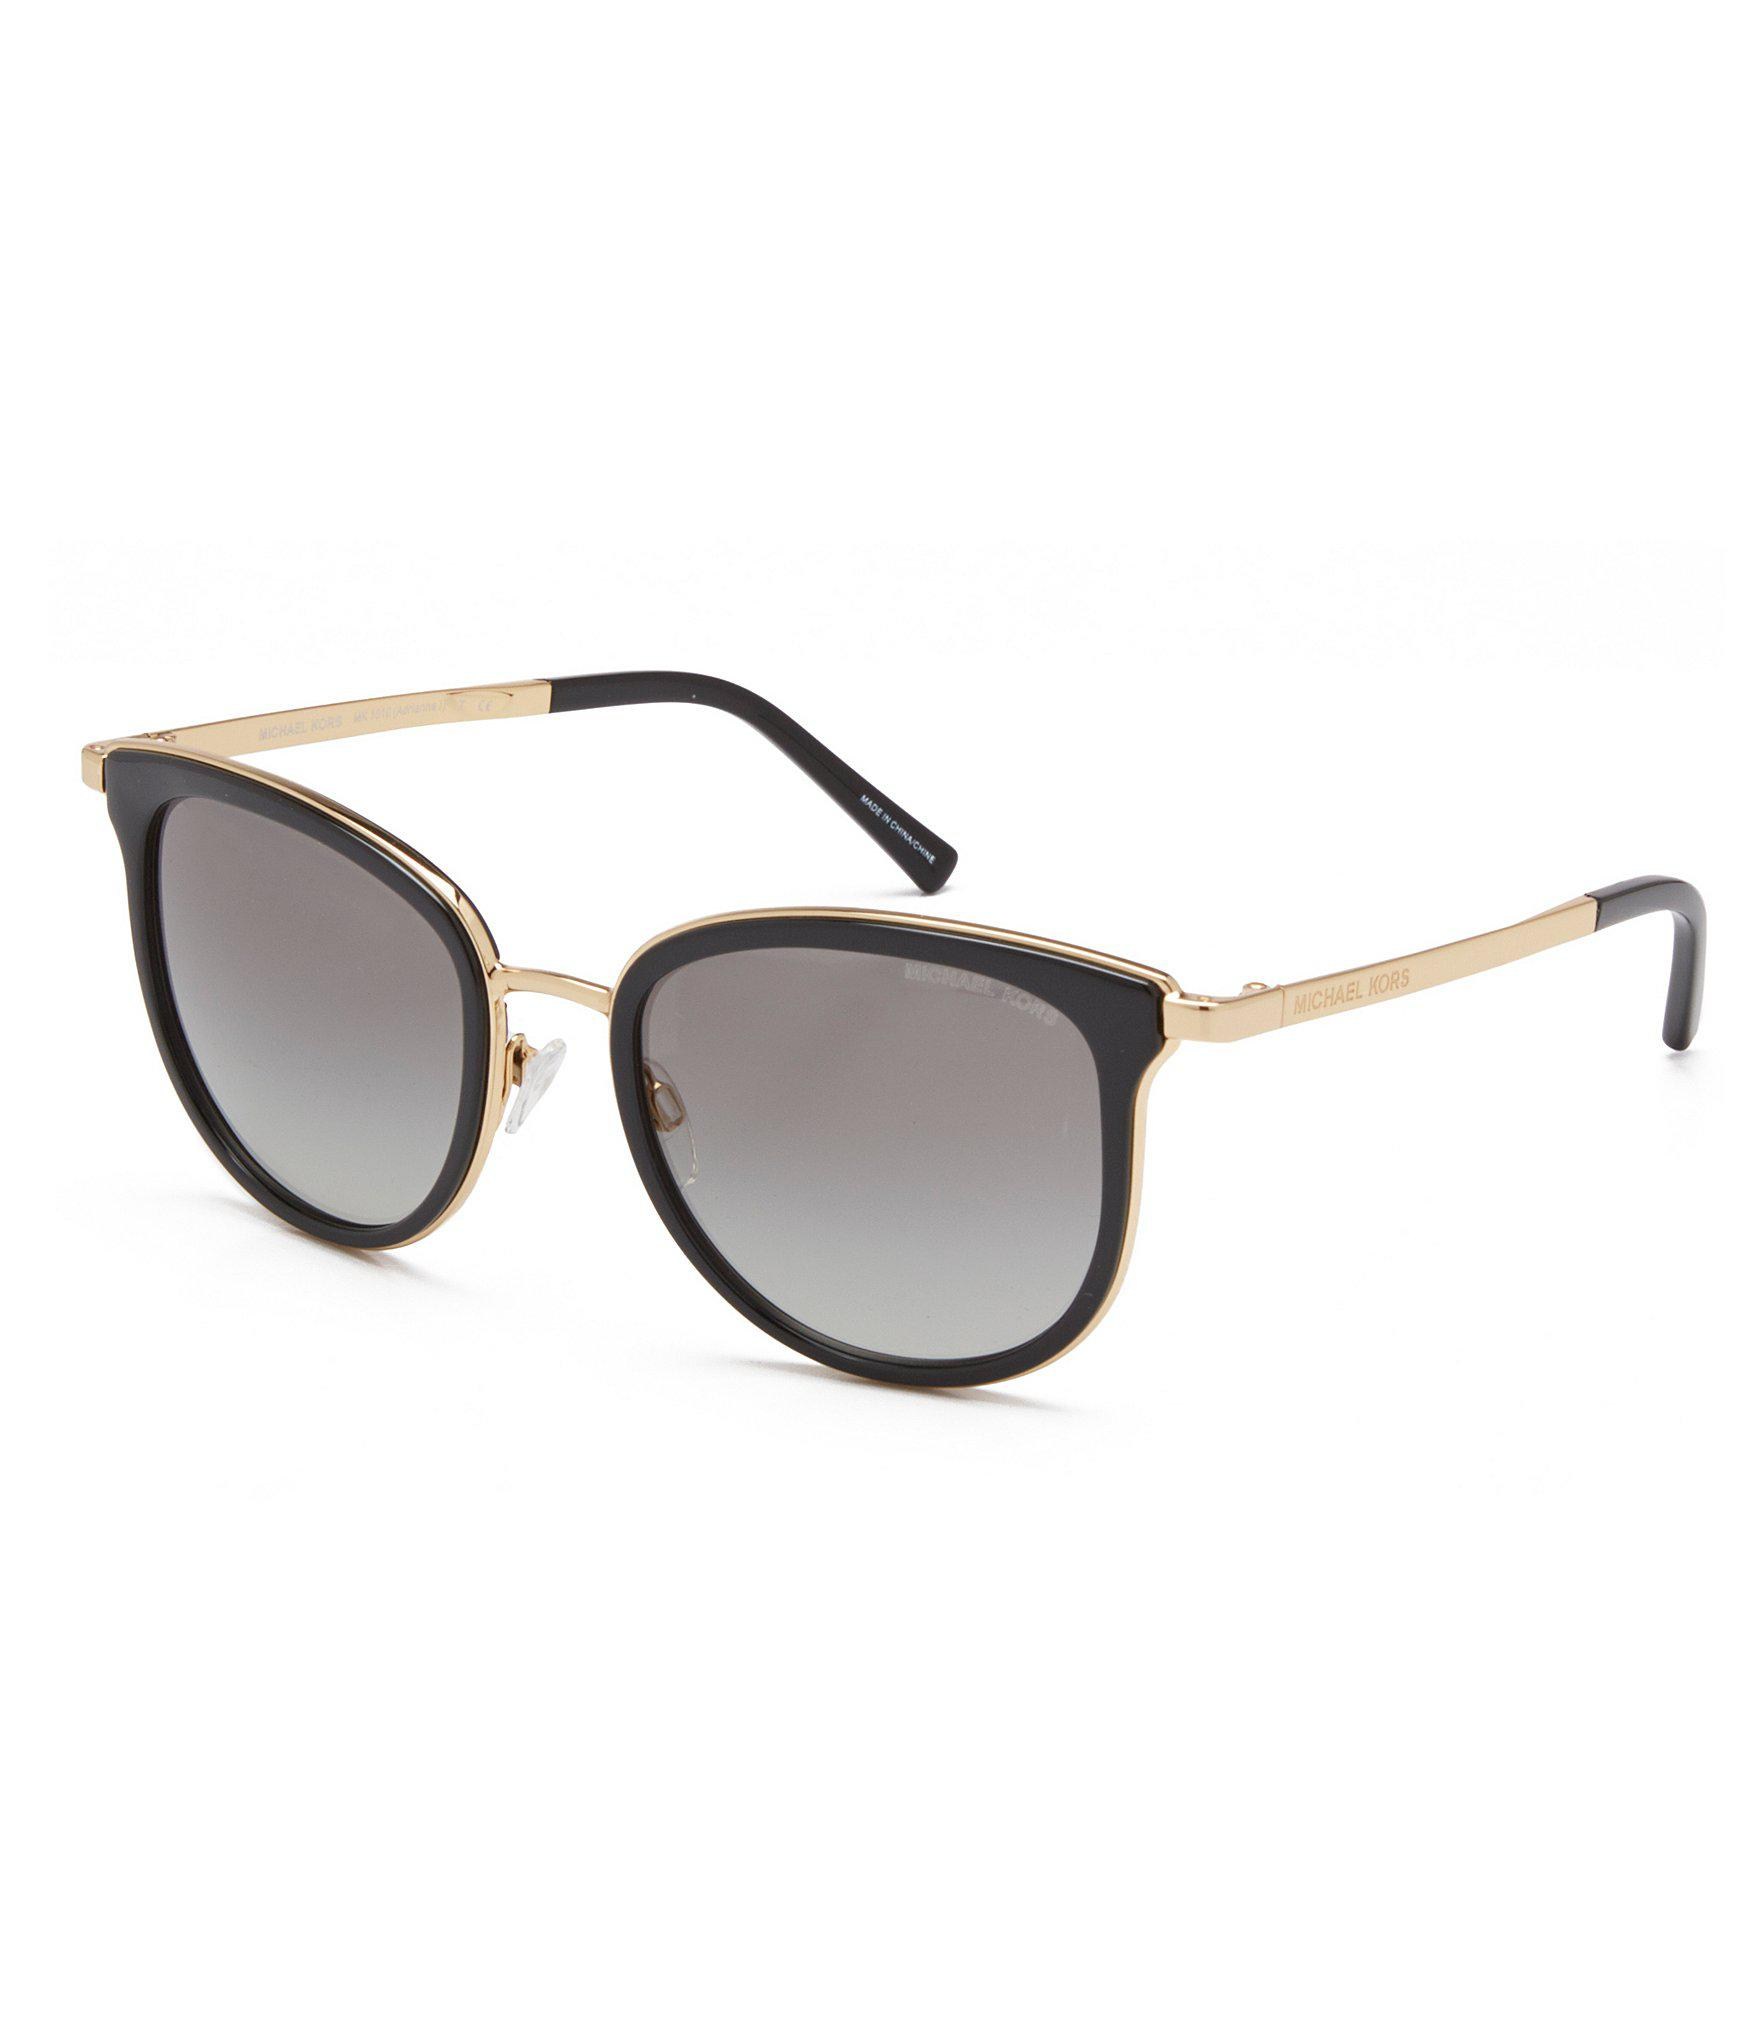 ec1fefa5ad0 Lyst - Michael Kors Gradient Sunglasses in Black